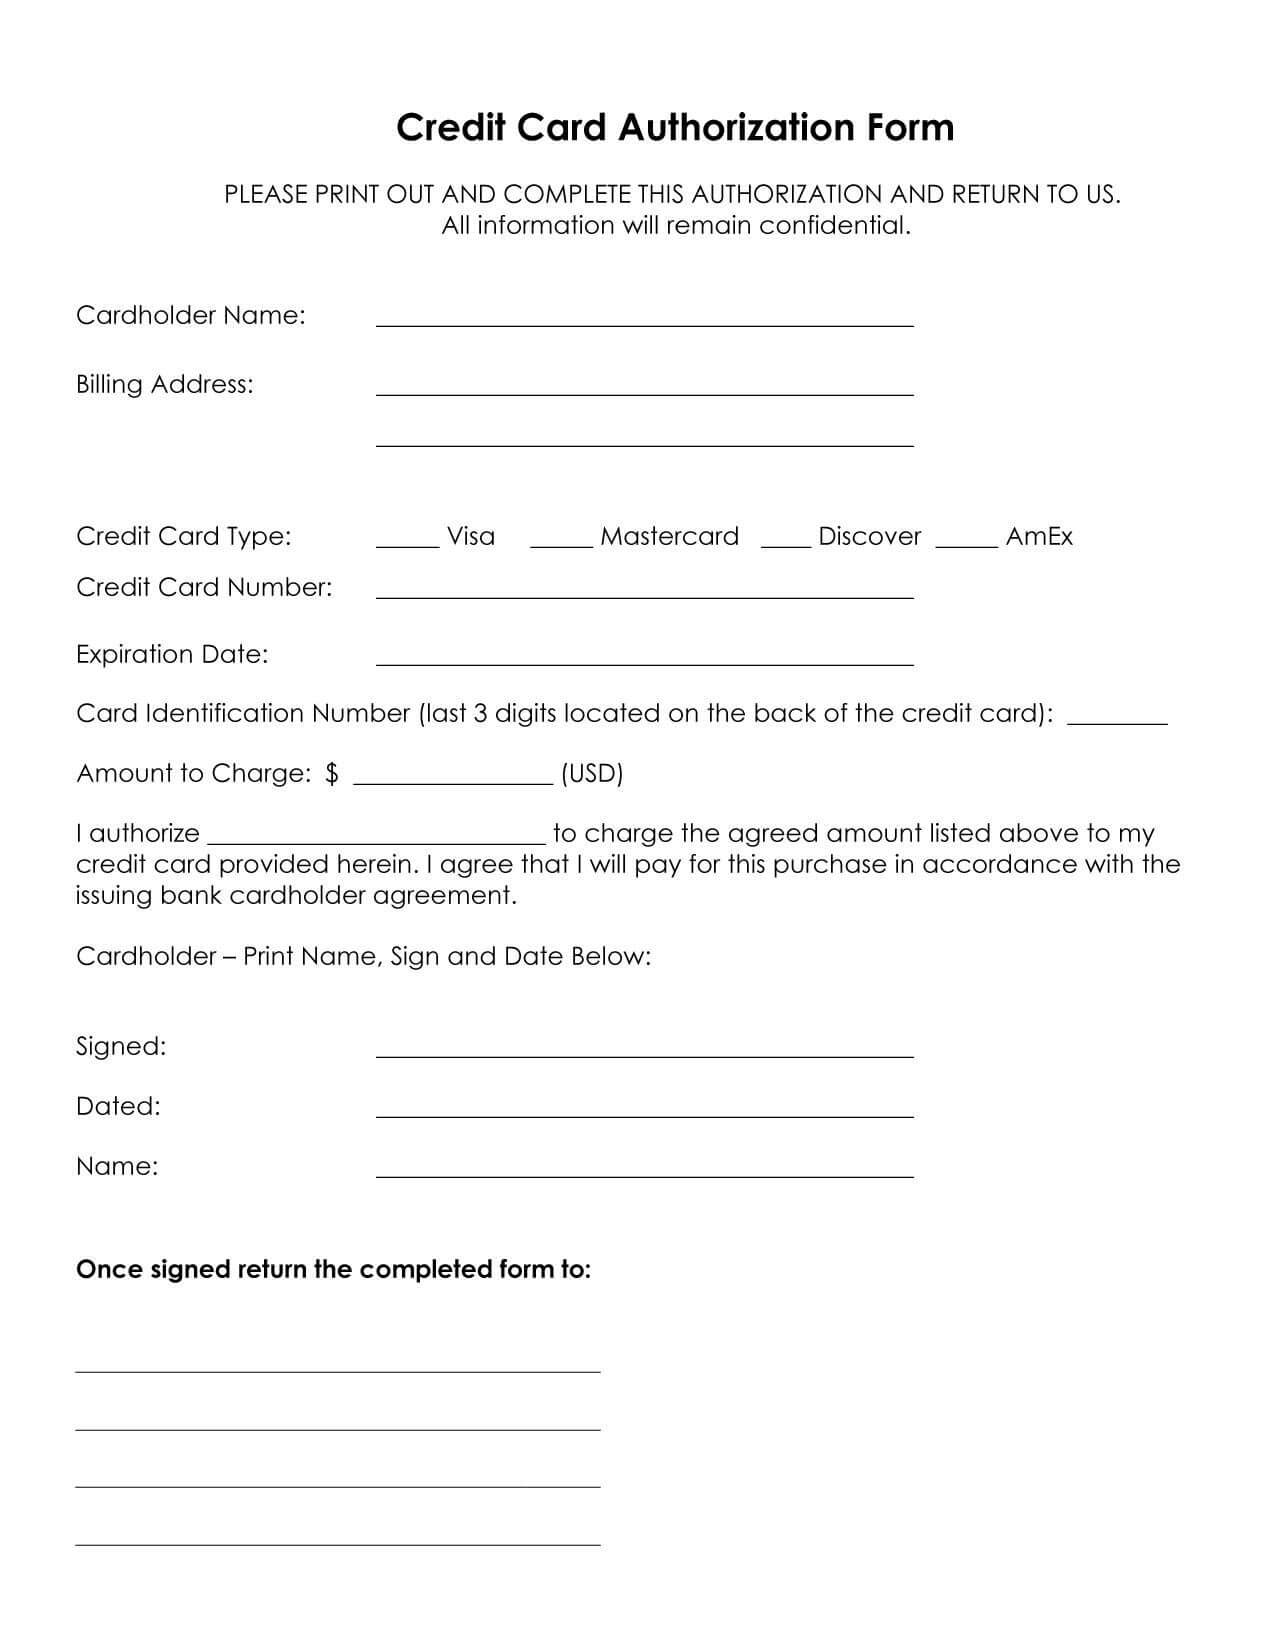 Credit Card Authorization Form Template In 2020 | Credit For Credit Card Billing Authorization Form Template